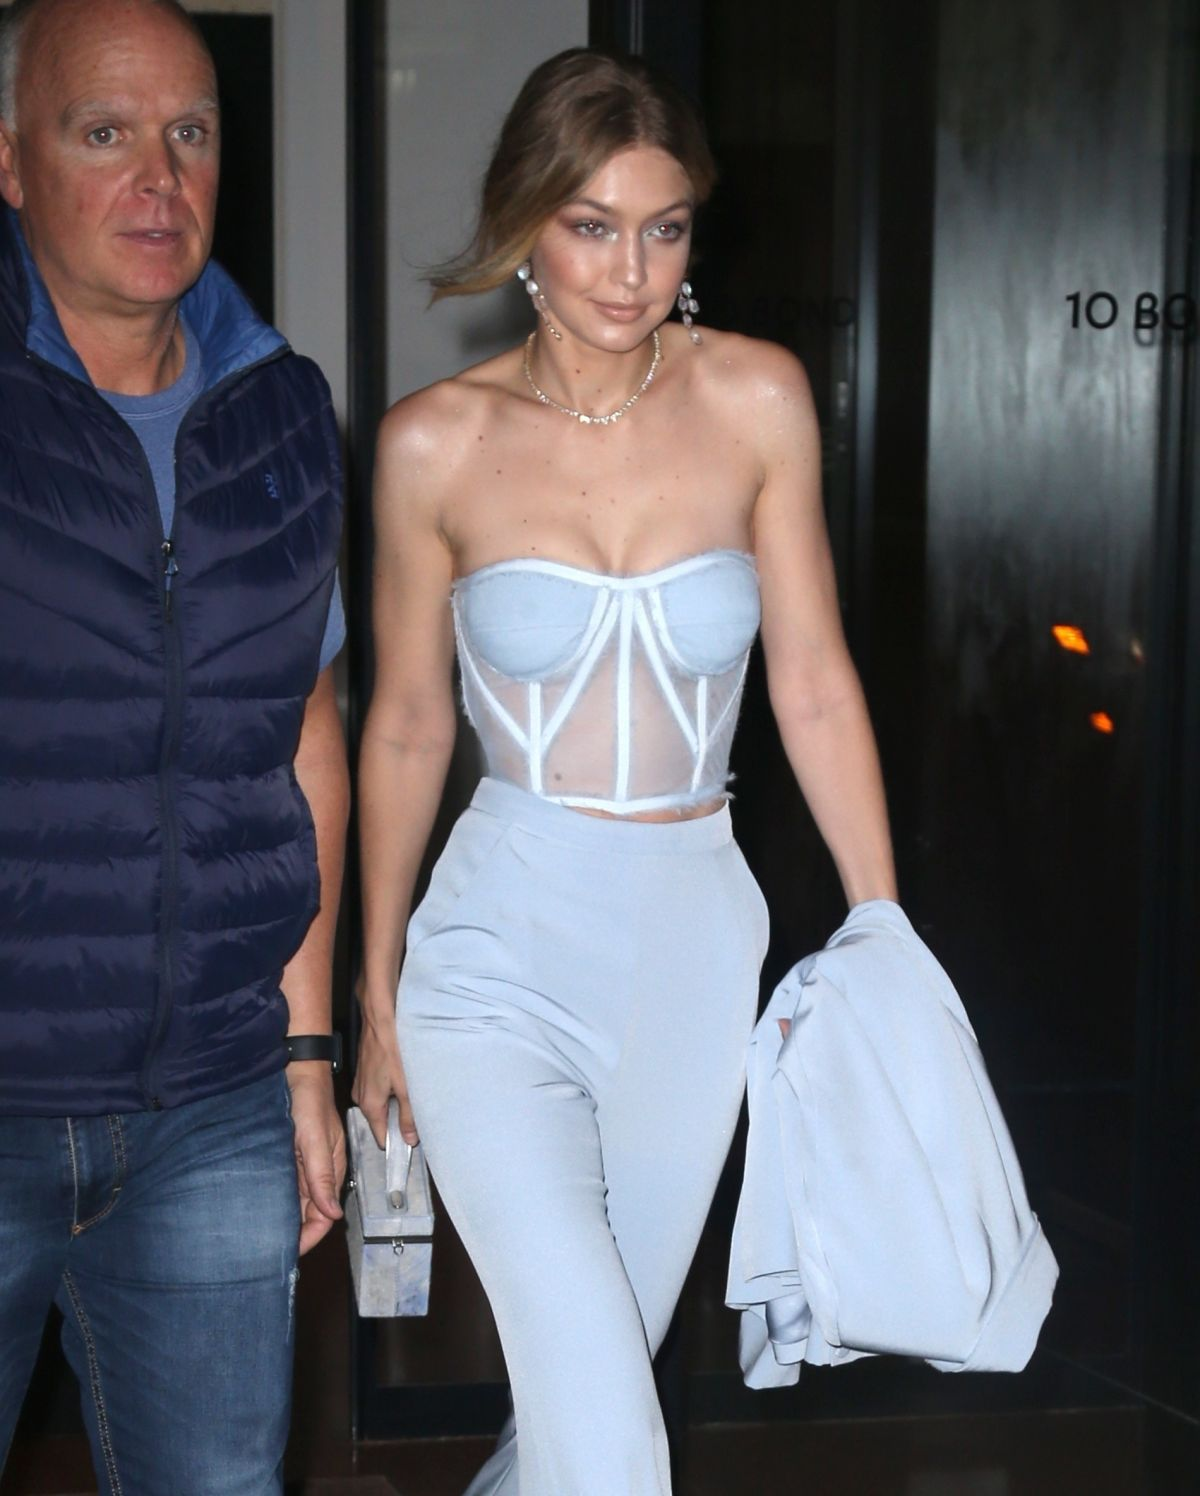 gigi-hadid-leaves-her-apartment-in-new-york-10-09-2017-9.jpg